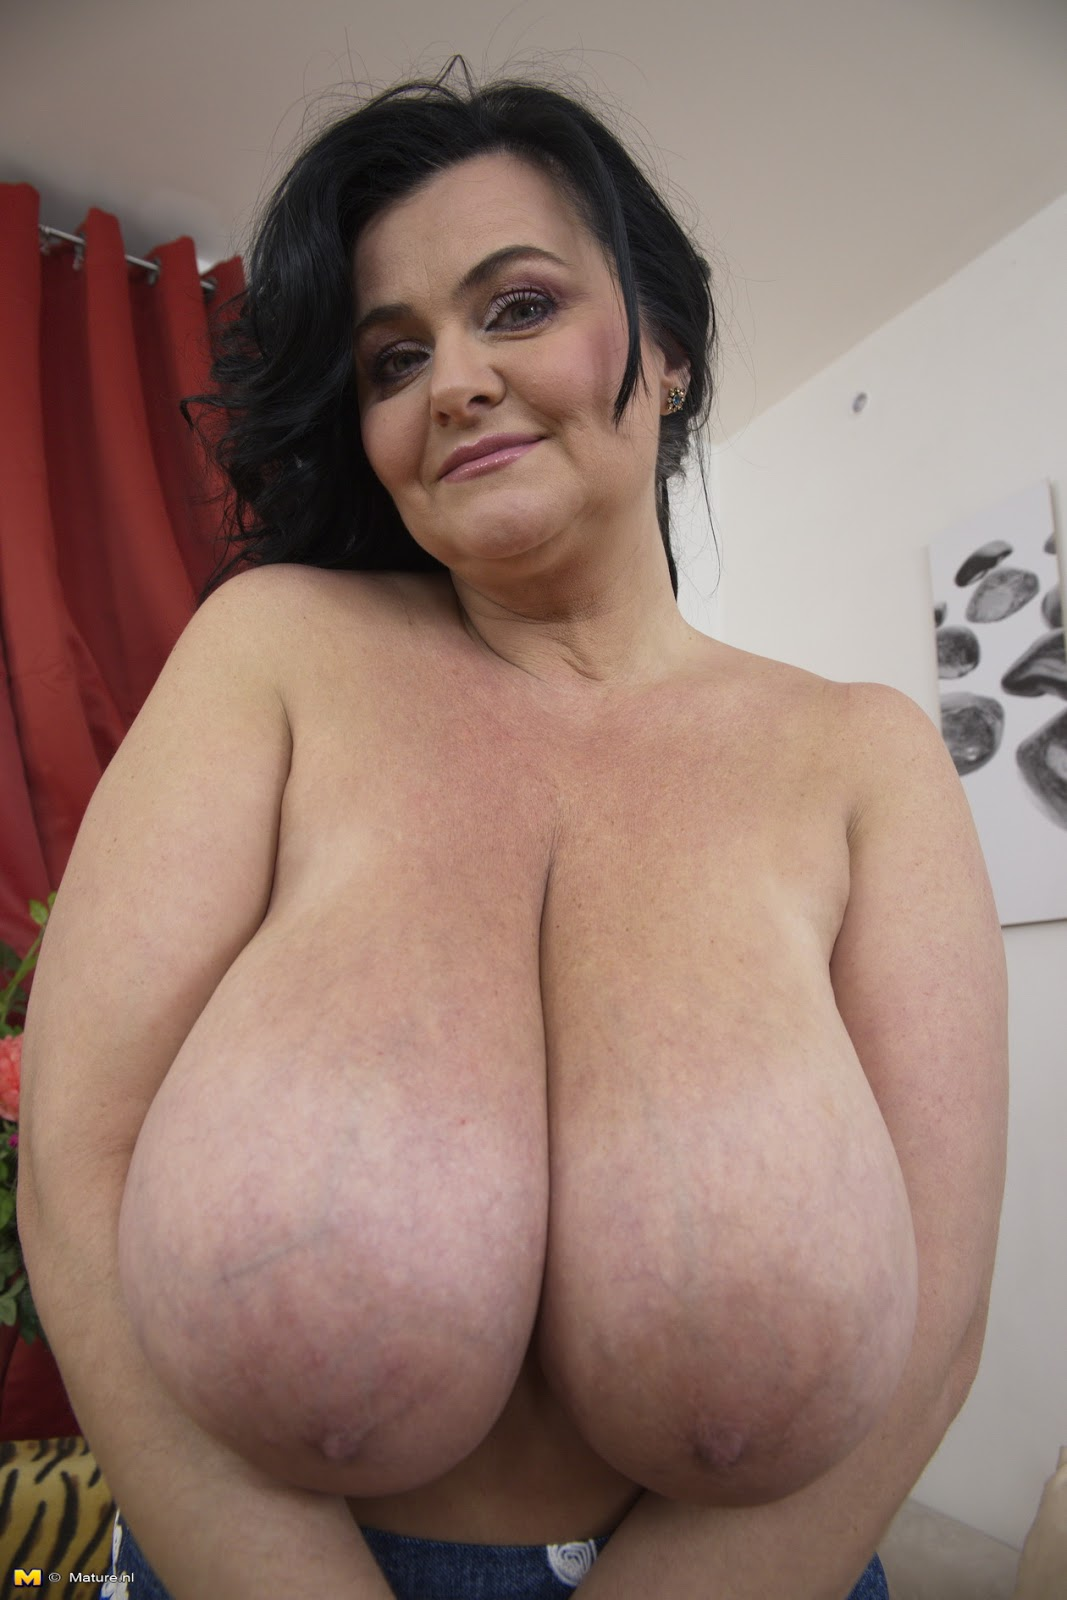 Archive Of Old Women Lorie Big Breasted-6724